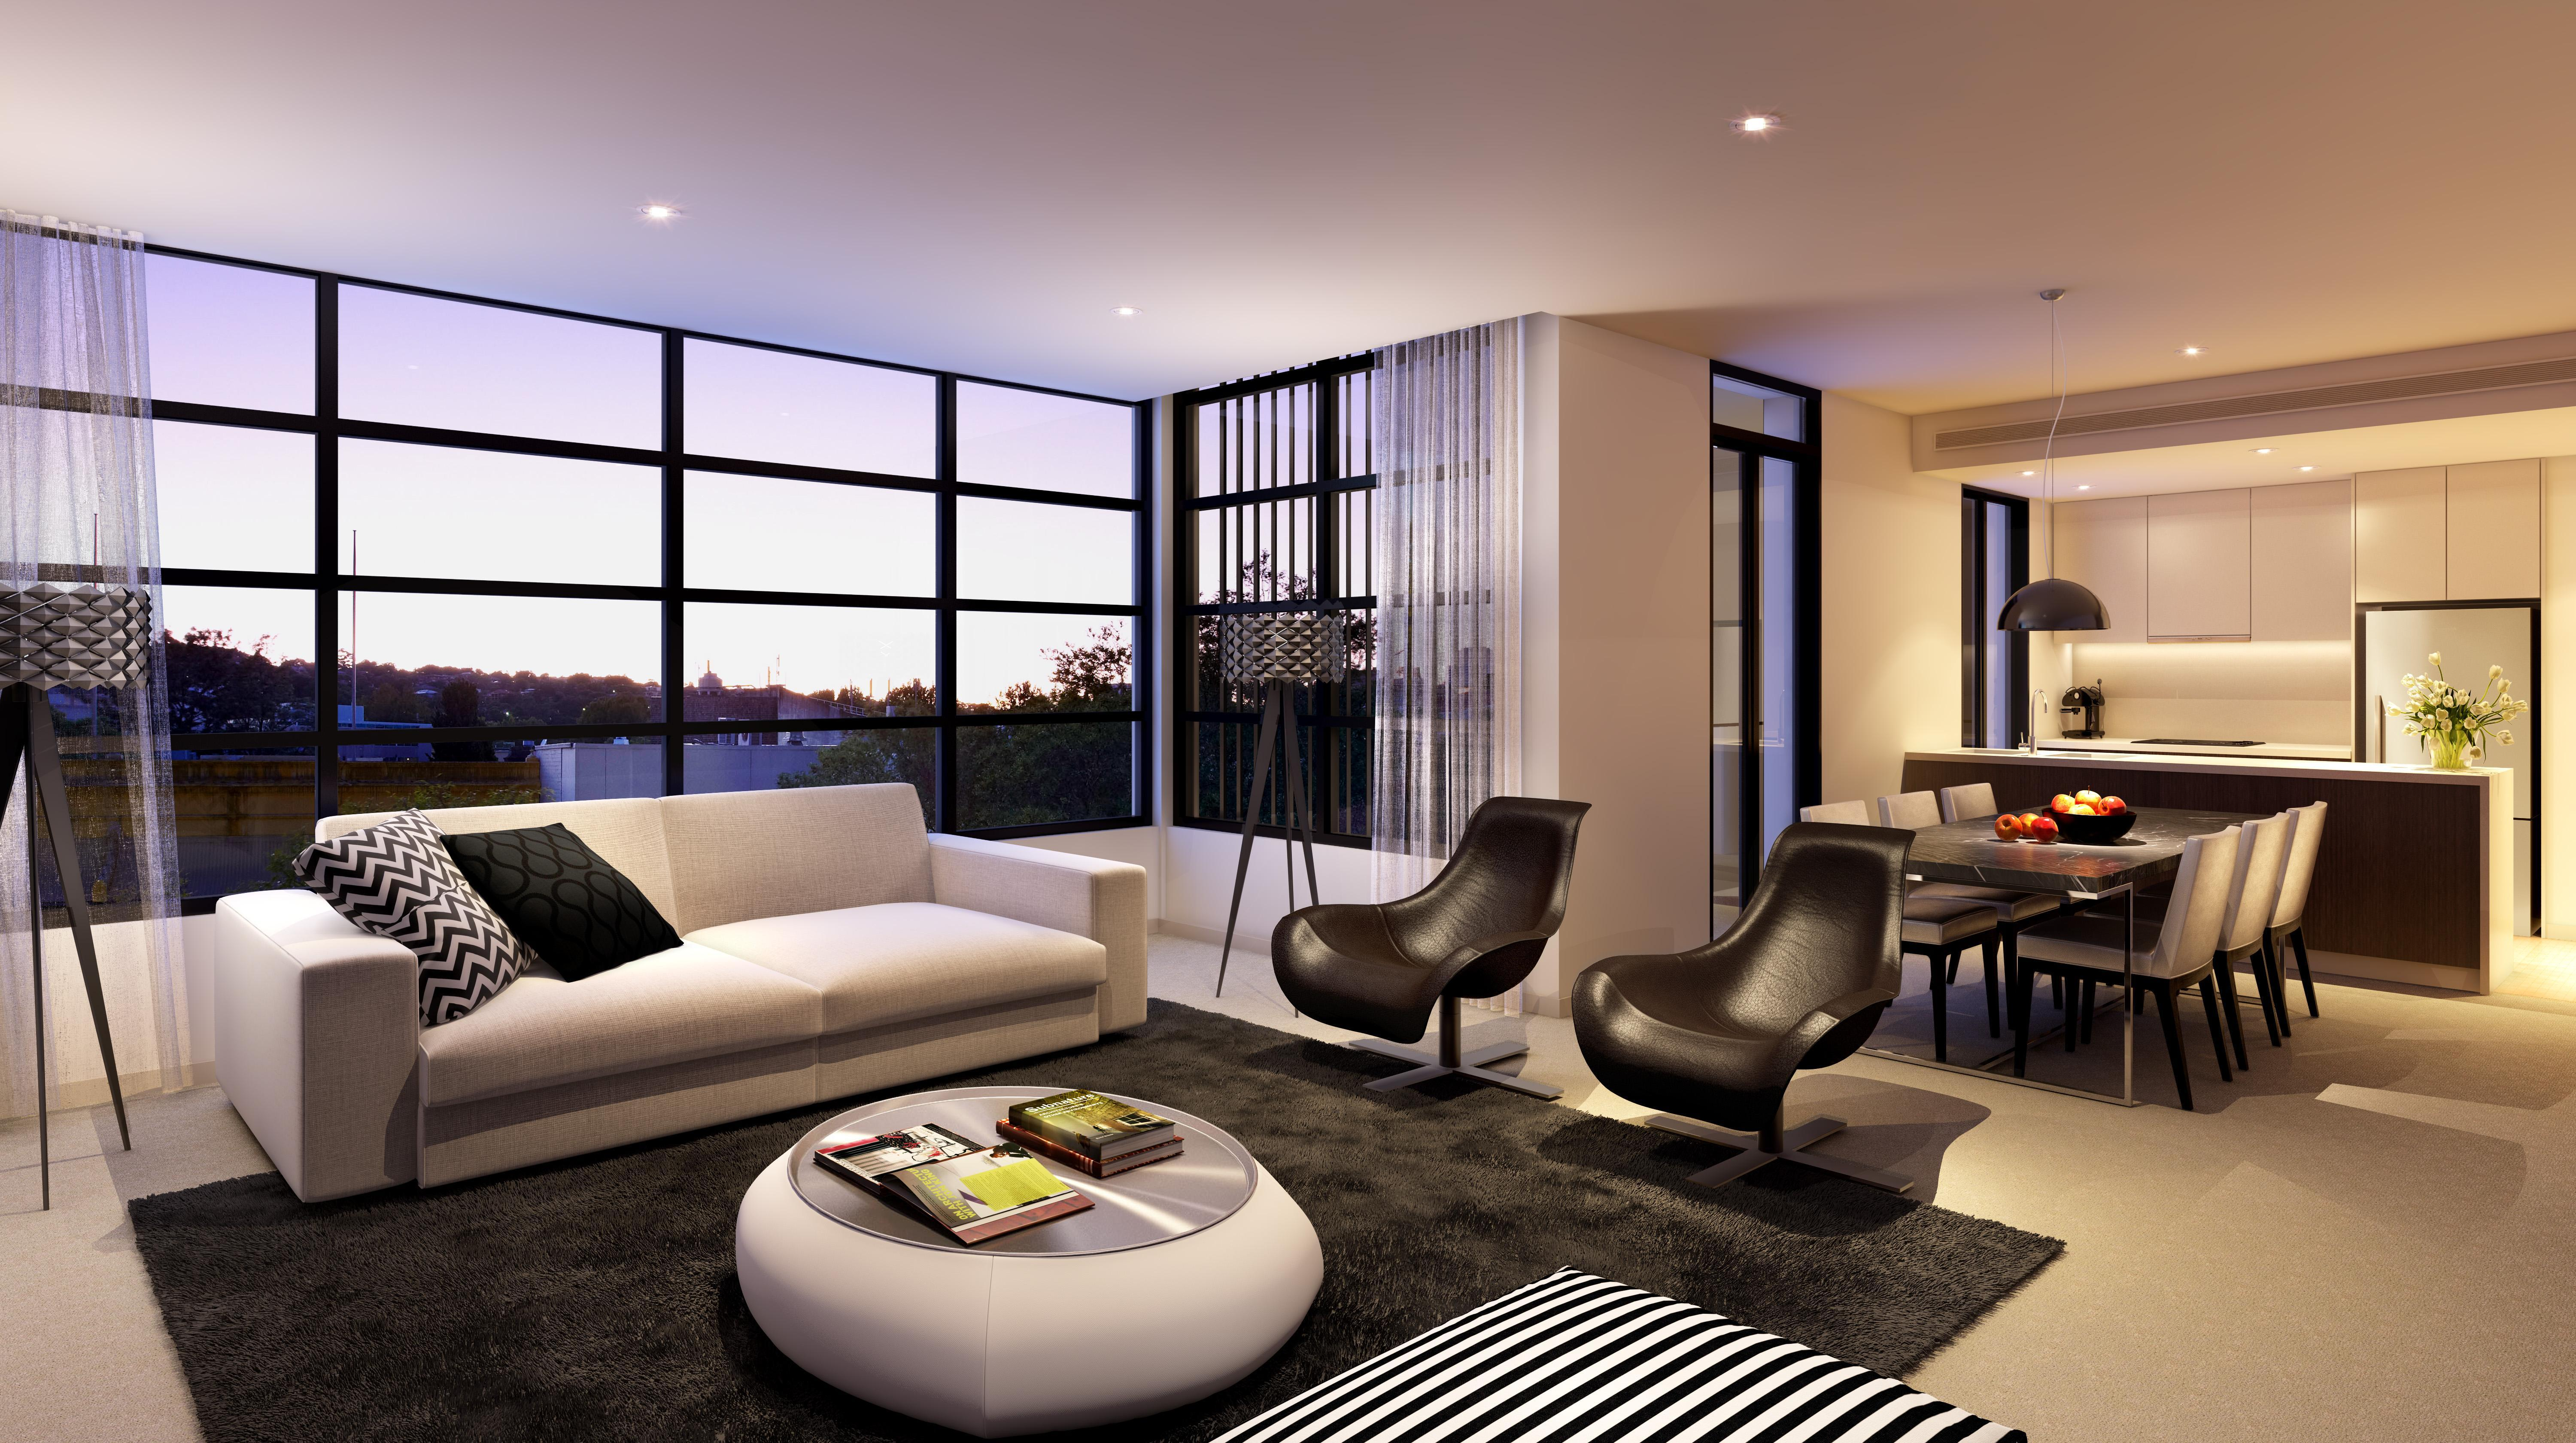 50 Best Interior Design For Your Home on Room Decor Photos  id=76034